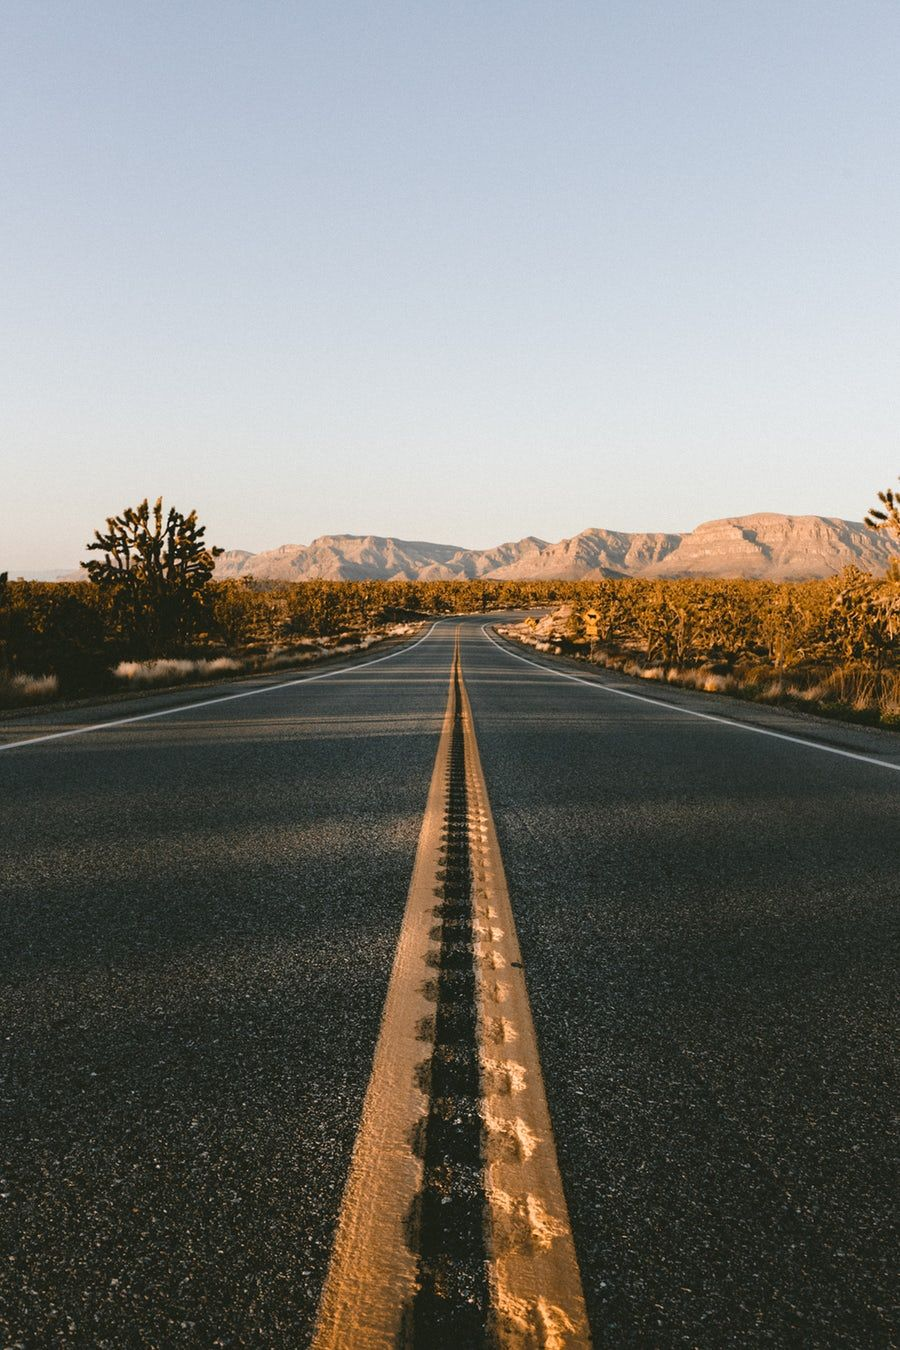 Low Angle View Of Asphalt Road During Daytime Desert Road Beautiful Roads Landscape Photography